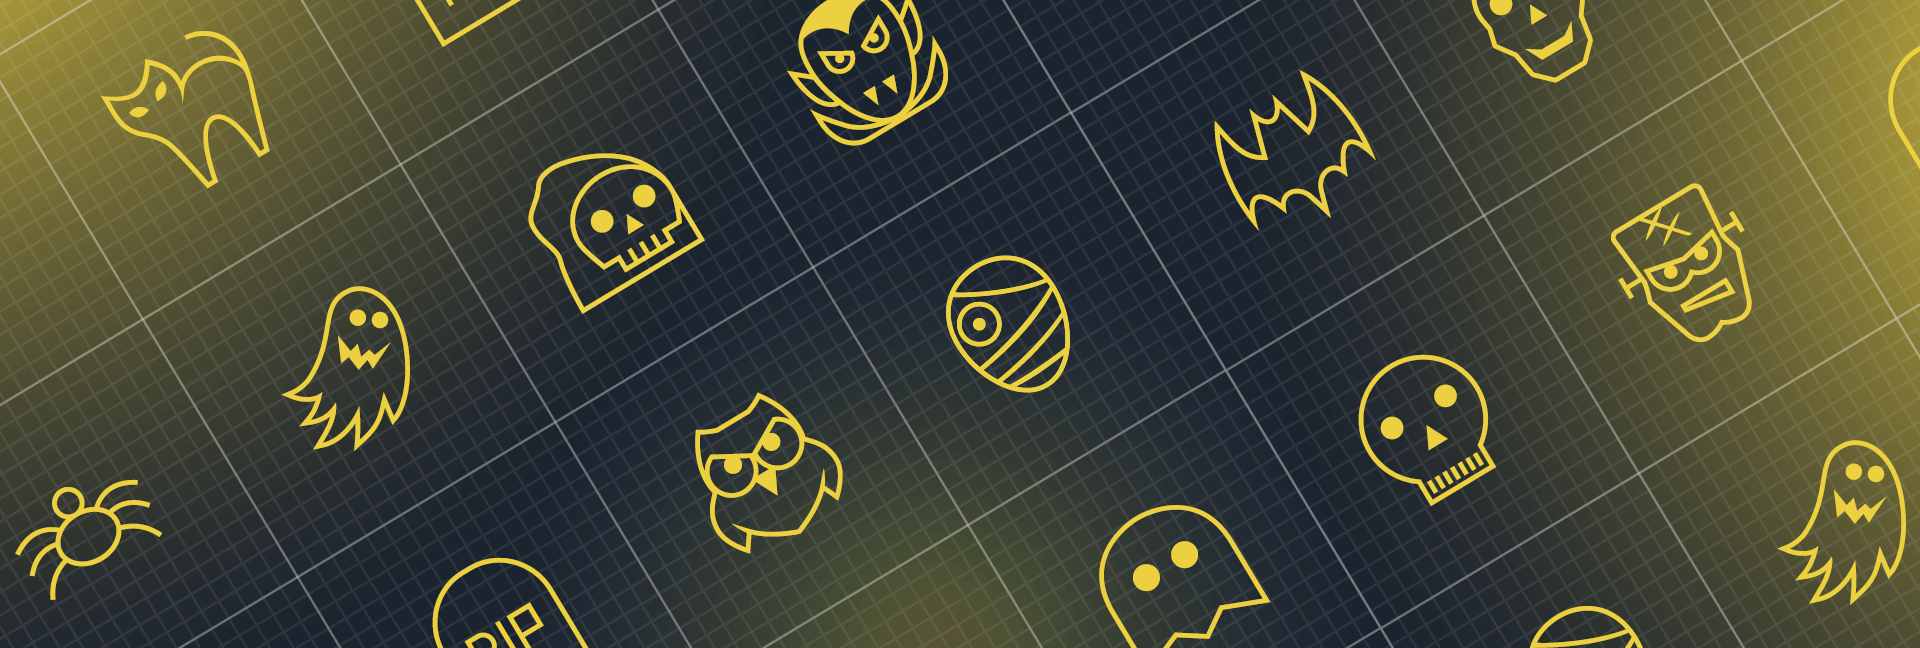 Halloween surprise for Futuramo Icons FREE + PRO users!